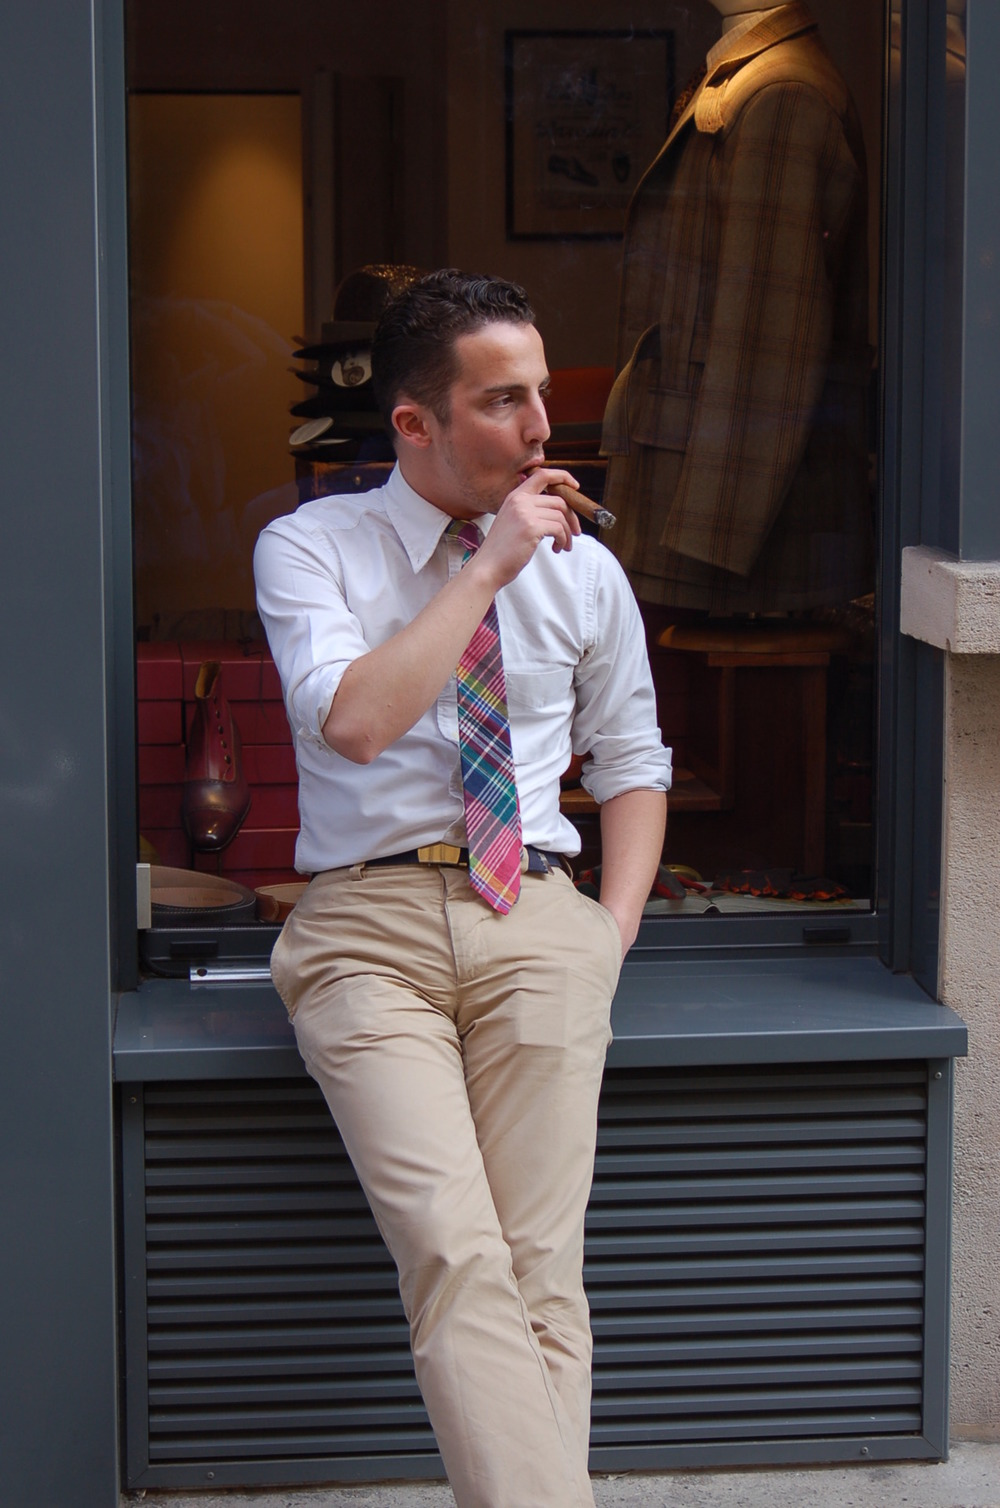 colorful-plaid-tie-cigar-smoking.jpg